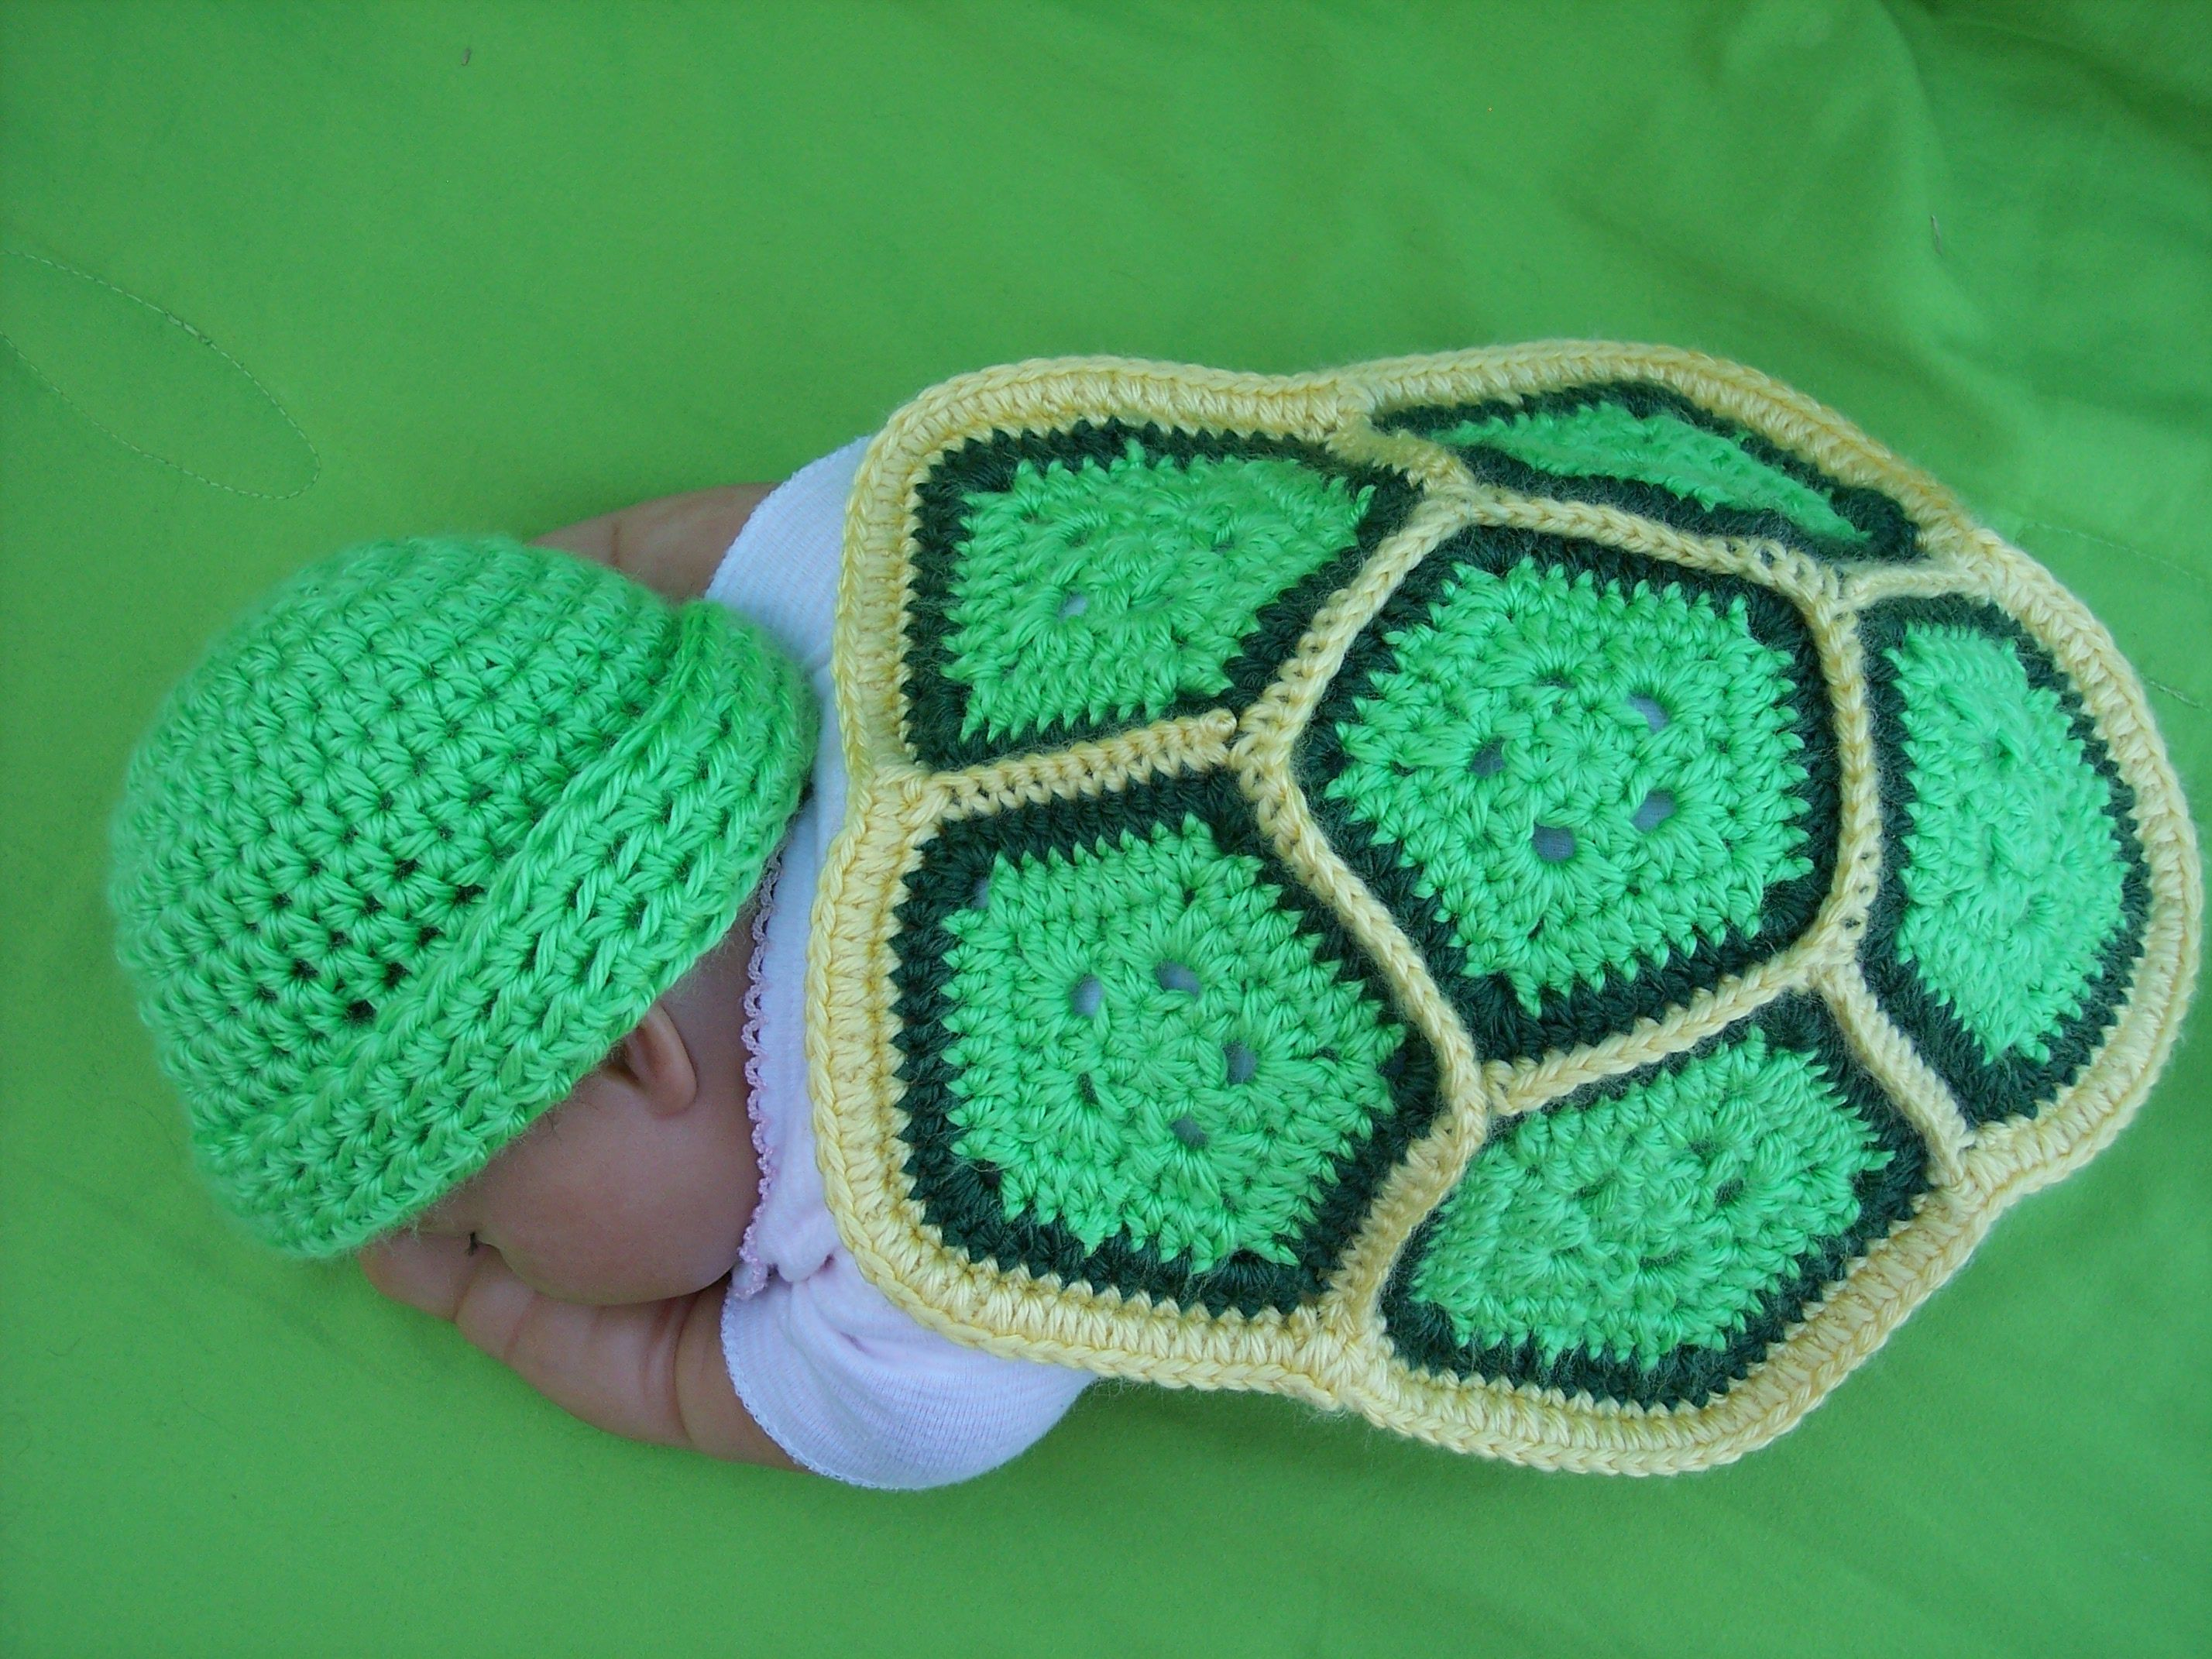 Crochet turtle shell free patternhelpful photos crochet baby crochet turtle shell free patternhelpful photos dt1010fo